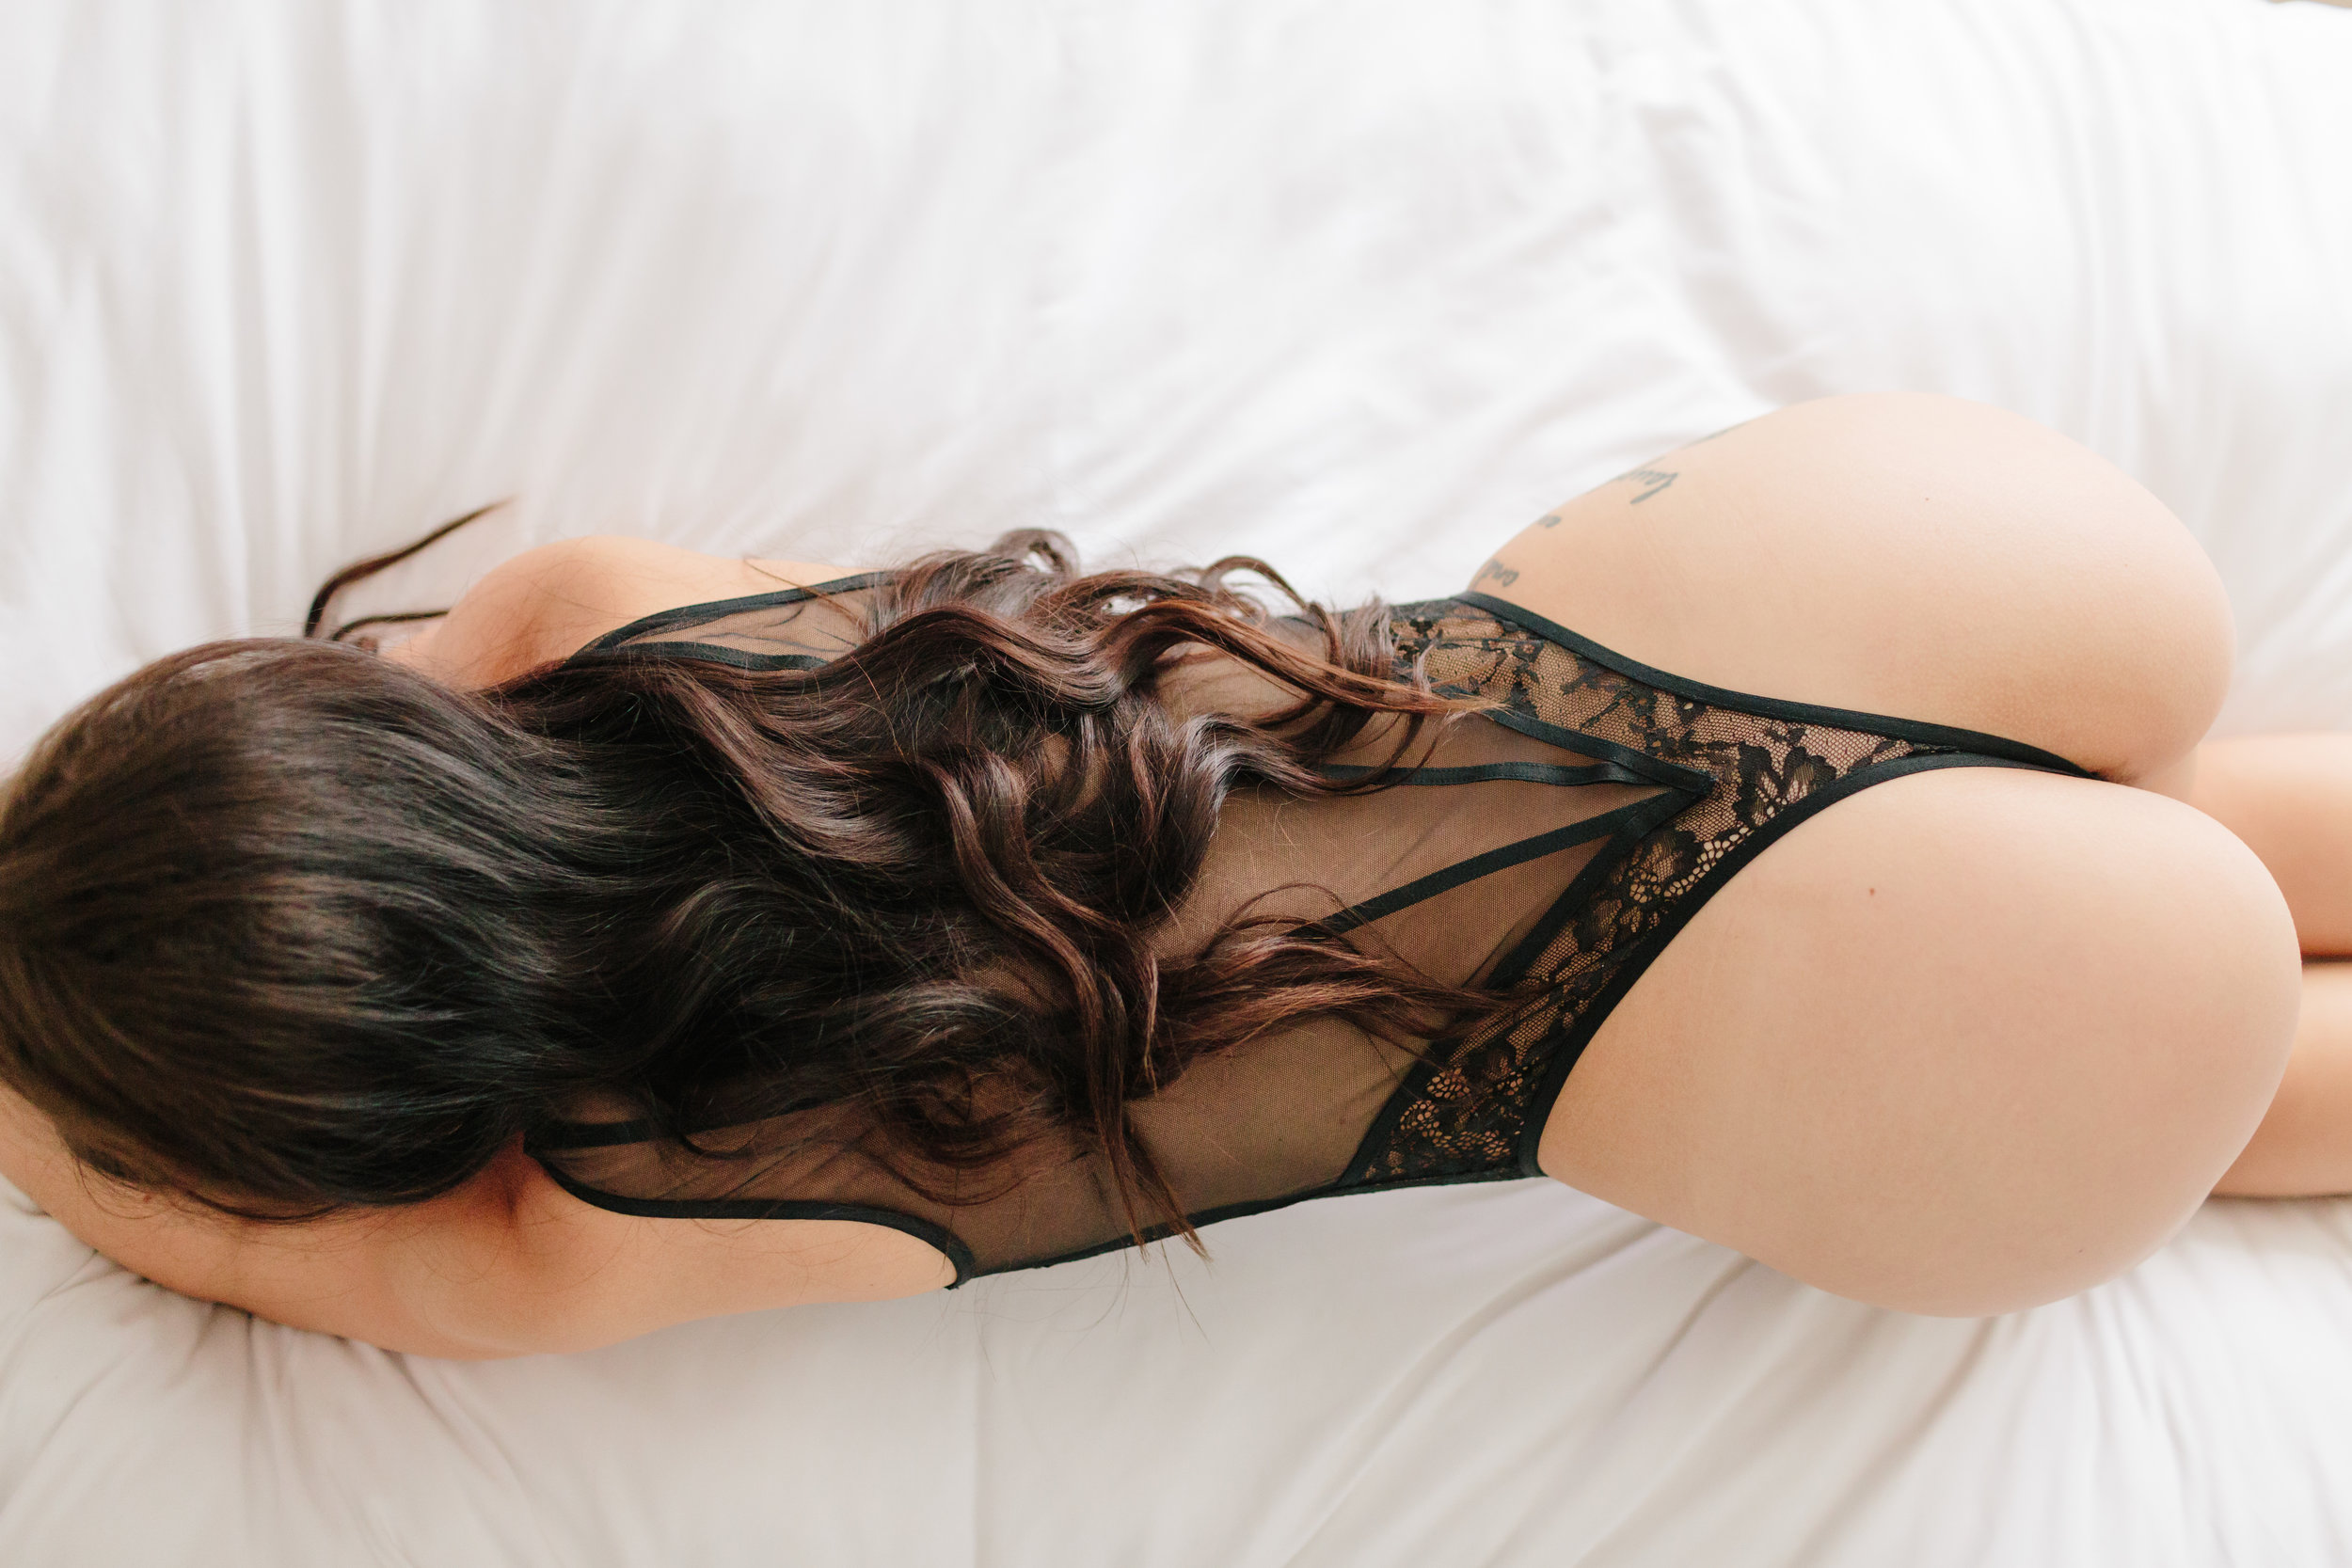 curvy woman at her boudoir session in black Lacey one piece laying in bed with white sheets